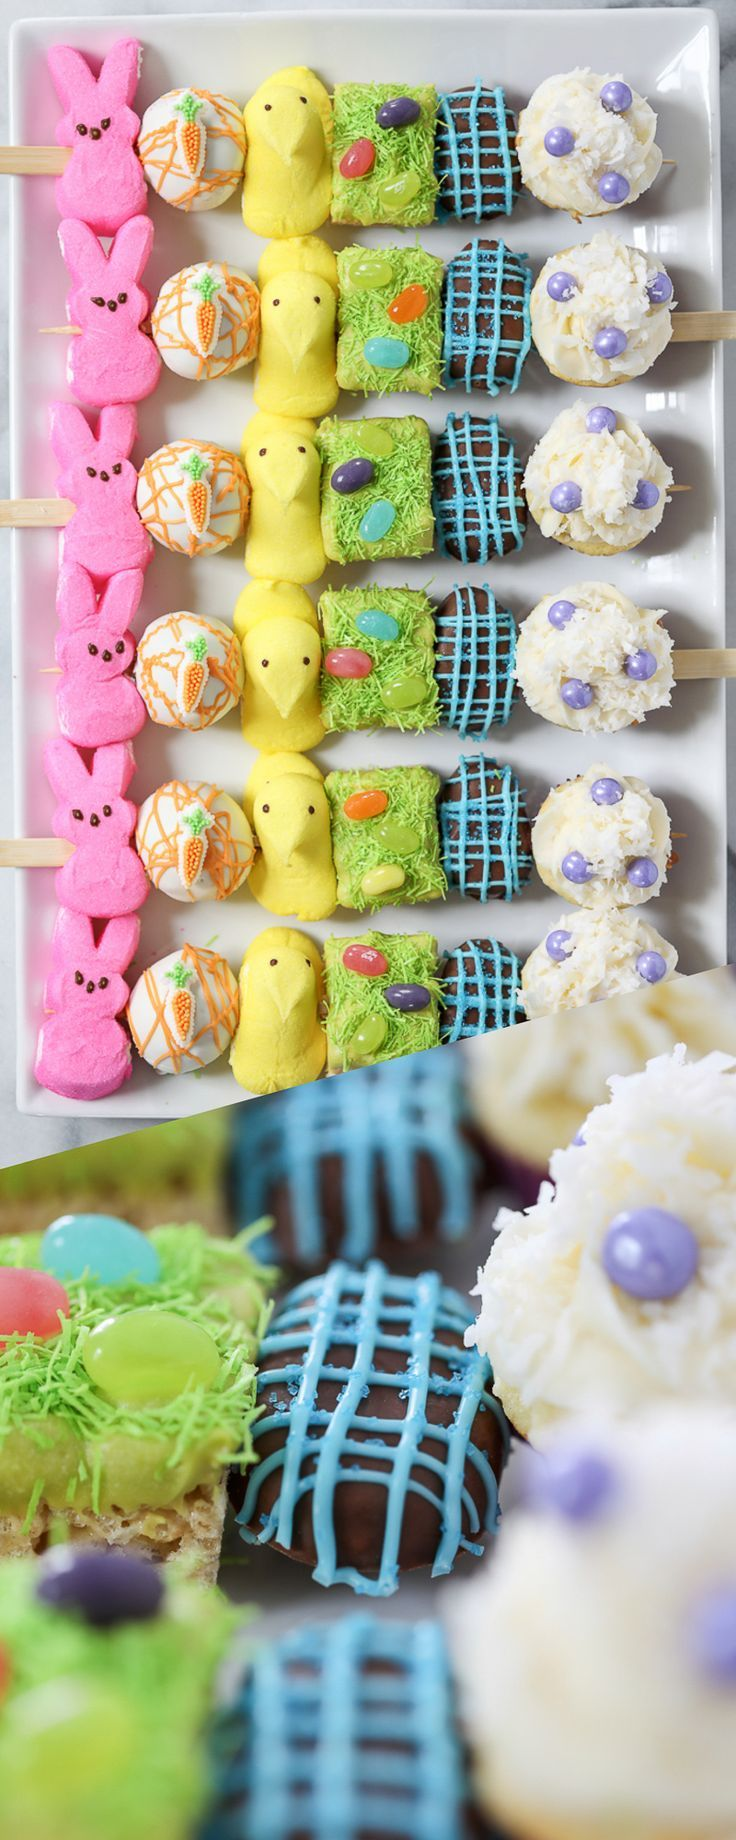 Easter Dessert Kabobs - spring dessert Easter recipe idea with marshmallow peeps, carrot cake, cupcakes and more!